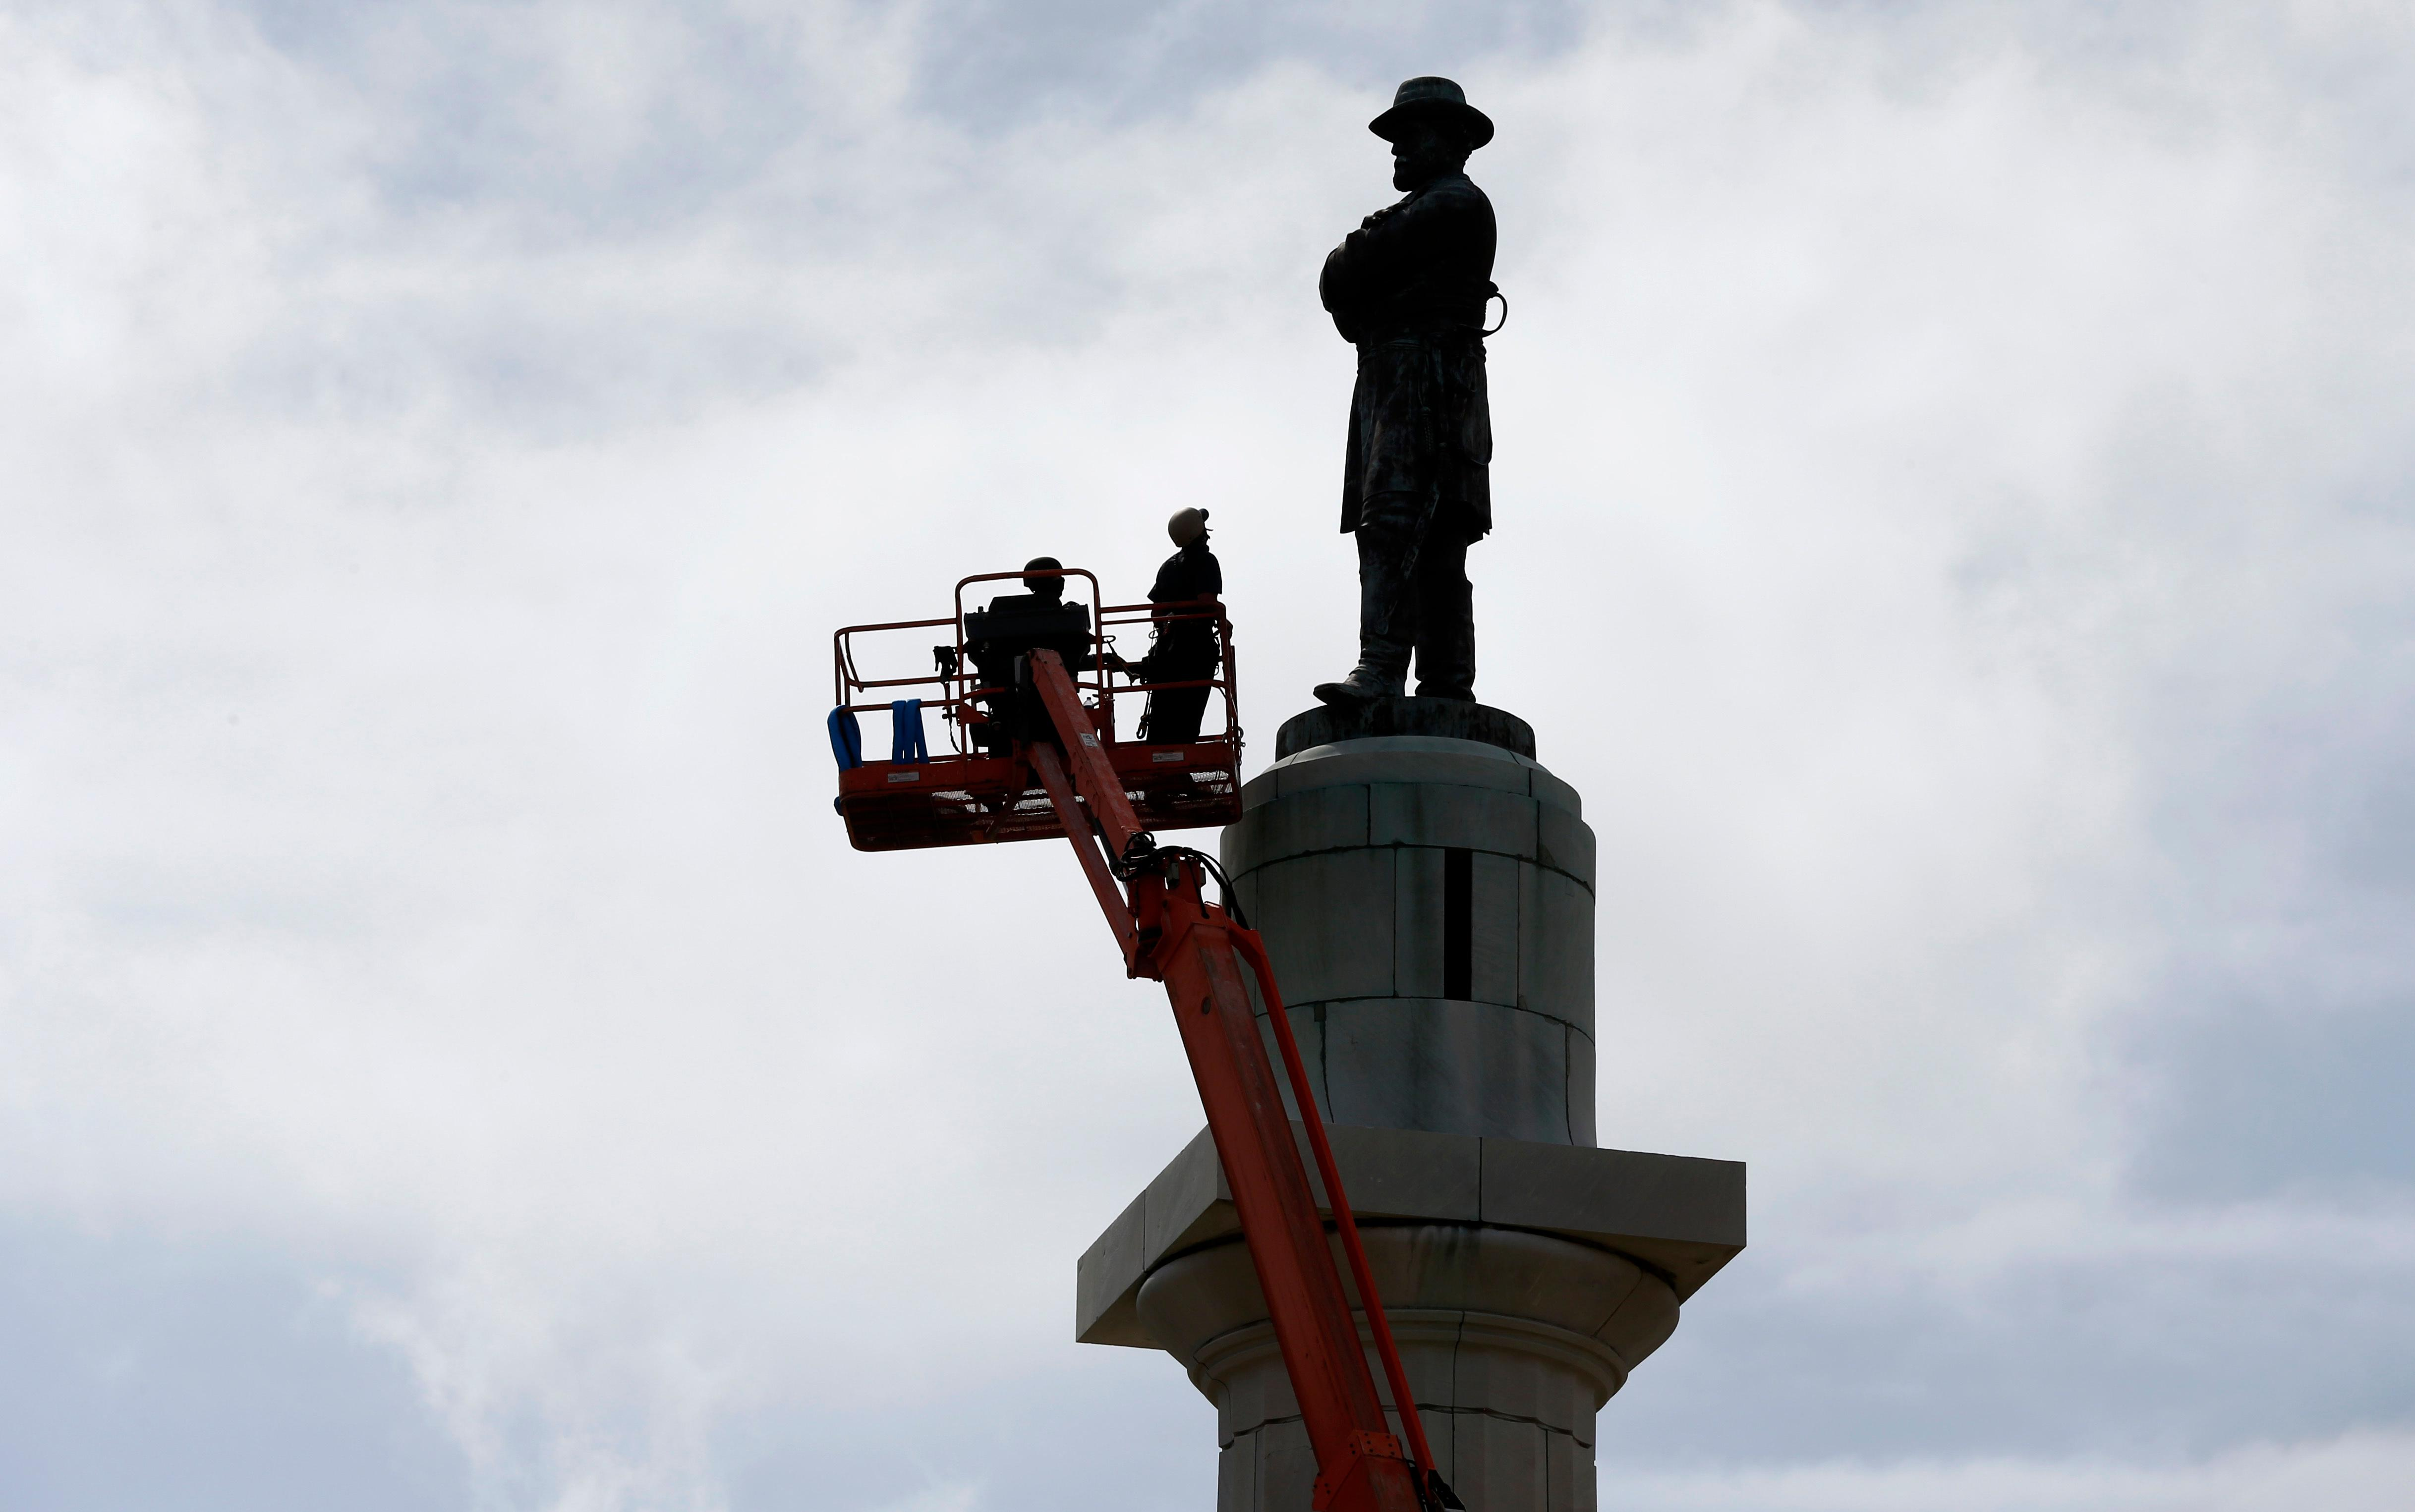 CORRECTS TITLE FROM PRESIDENT TO GENERAL Workers prepare to take down the statue of Robert E. Lee, former general of the Confederacy, which stands in Lee Circle in New Orleans, Friday, May 19, 2017.  The city is completing the Southern city's removal of four Confederate-related statues that some called divisive. (AP Photo/Gerald Herbert)